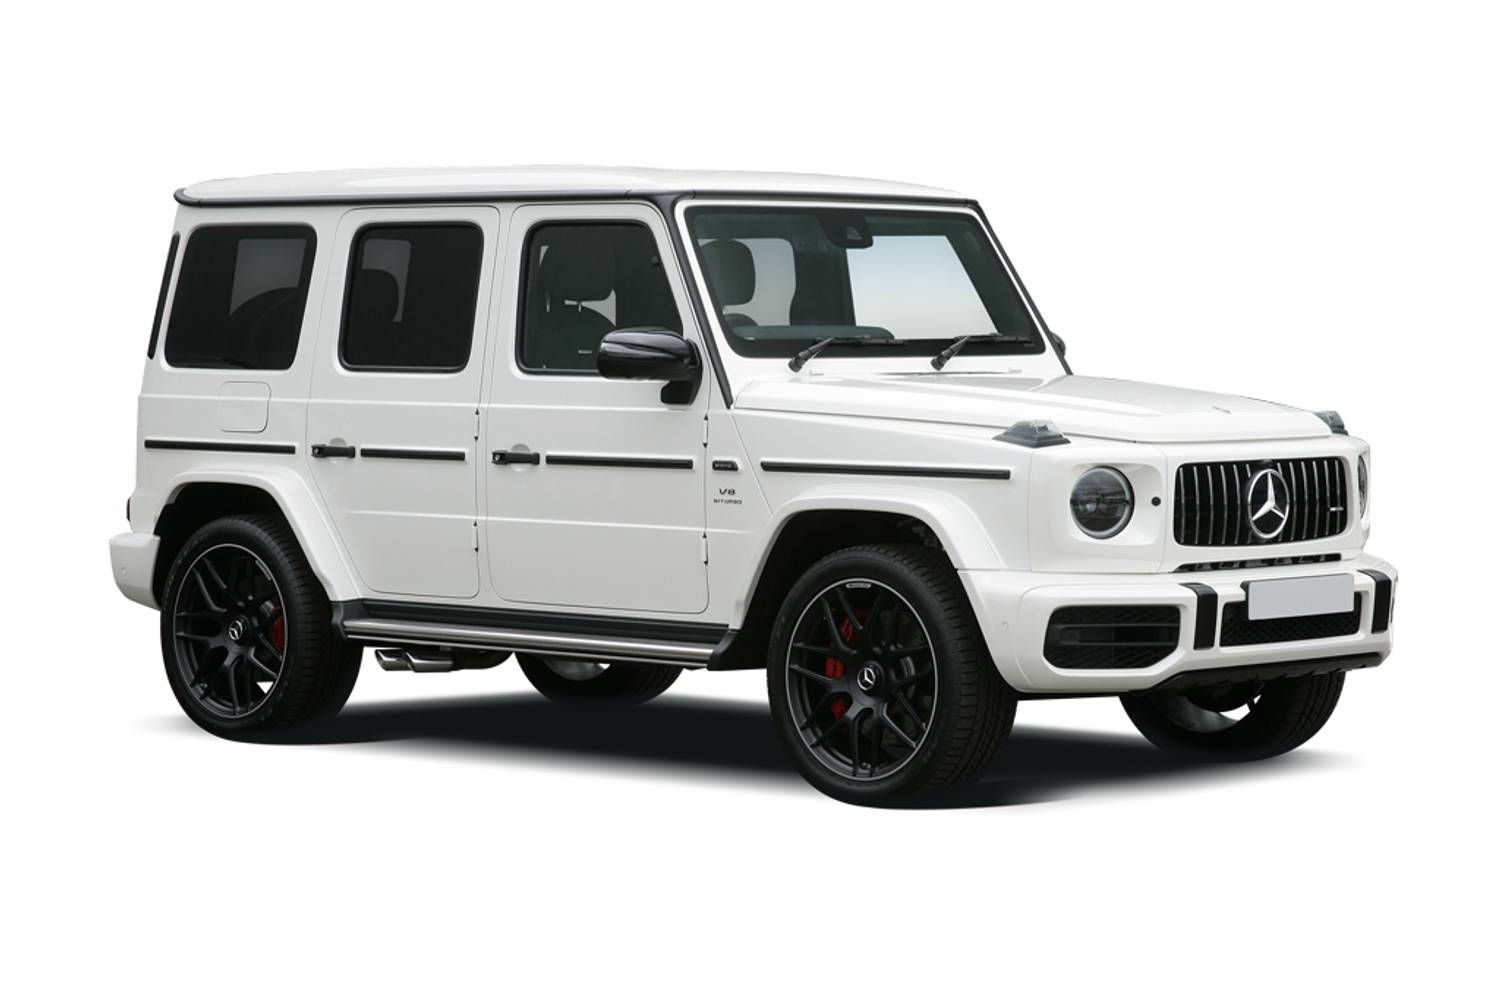 New Mercedes Benz G Class Amg Station Wagon G63 5 Door 9g Tronic 2018 For Sale